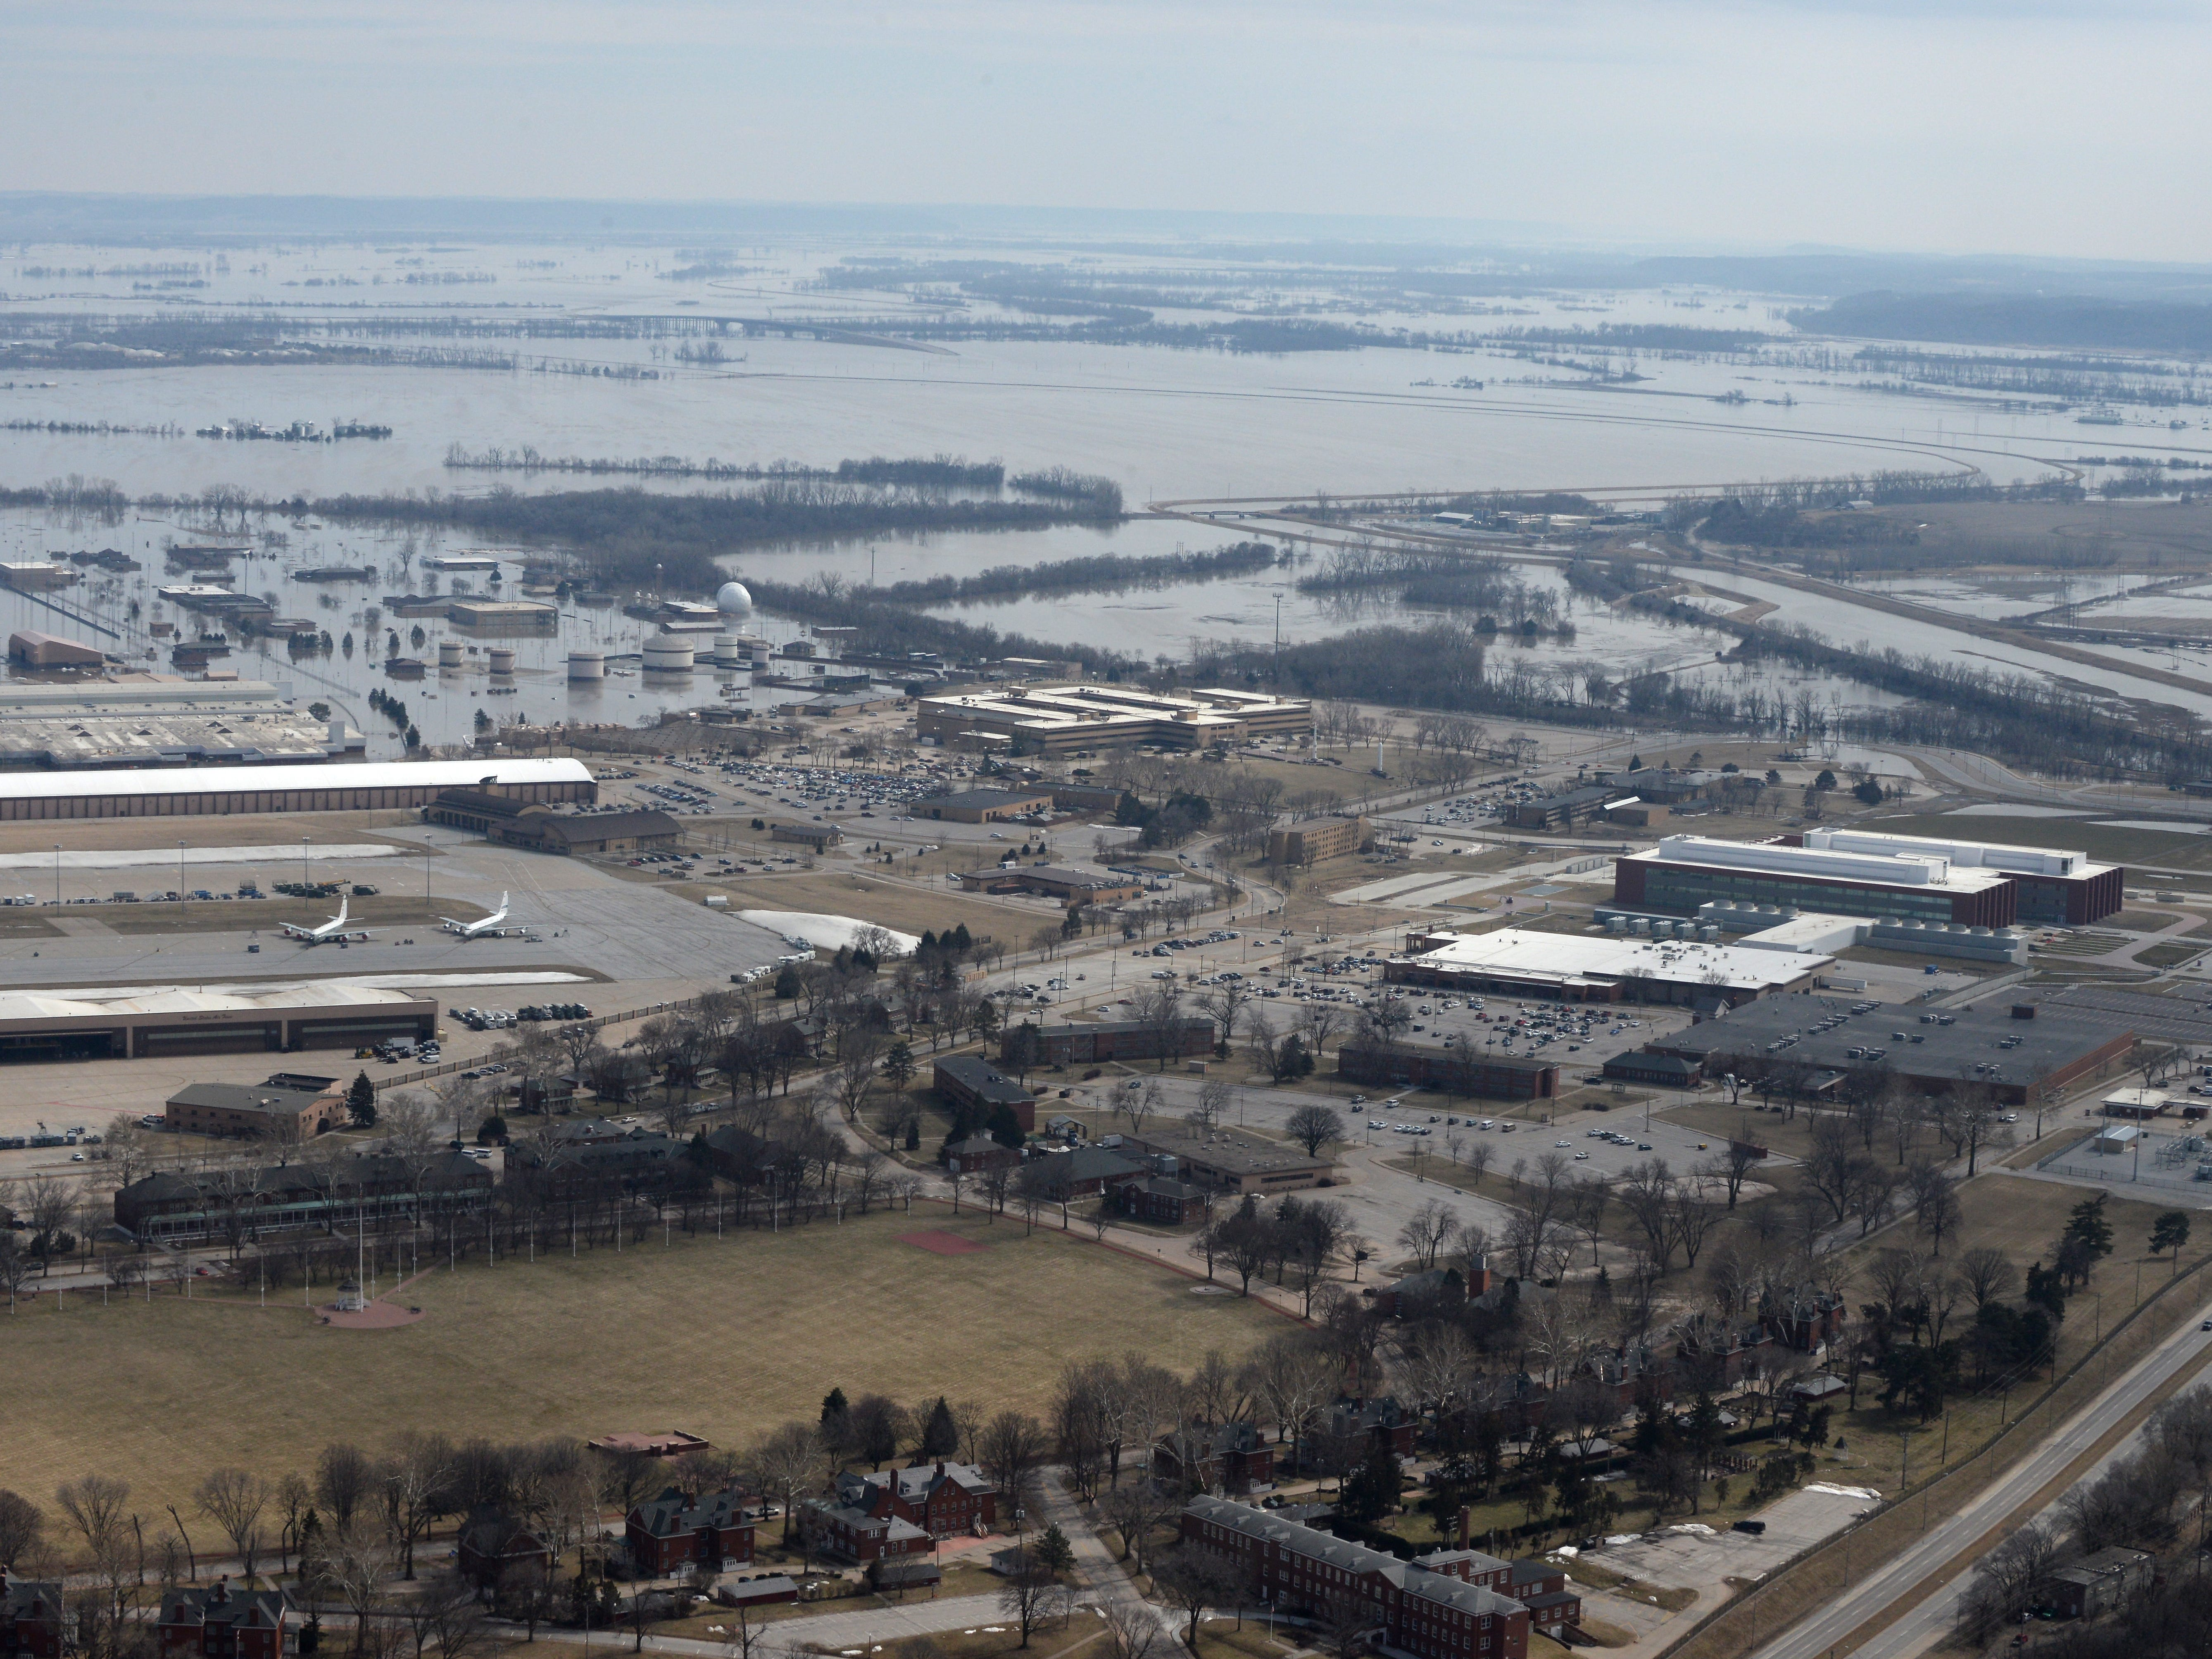 Offutt Air Force Base and the surrounding areas affected by flood waters in  Bellevue, Neb. on March 17, 2019.